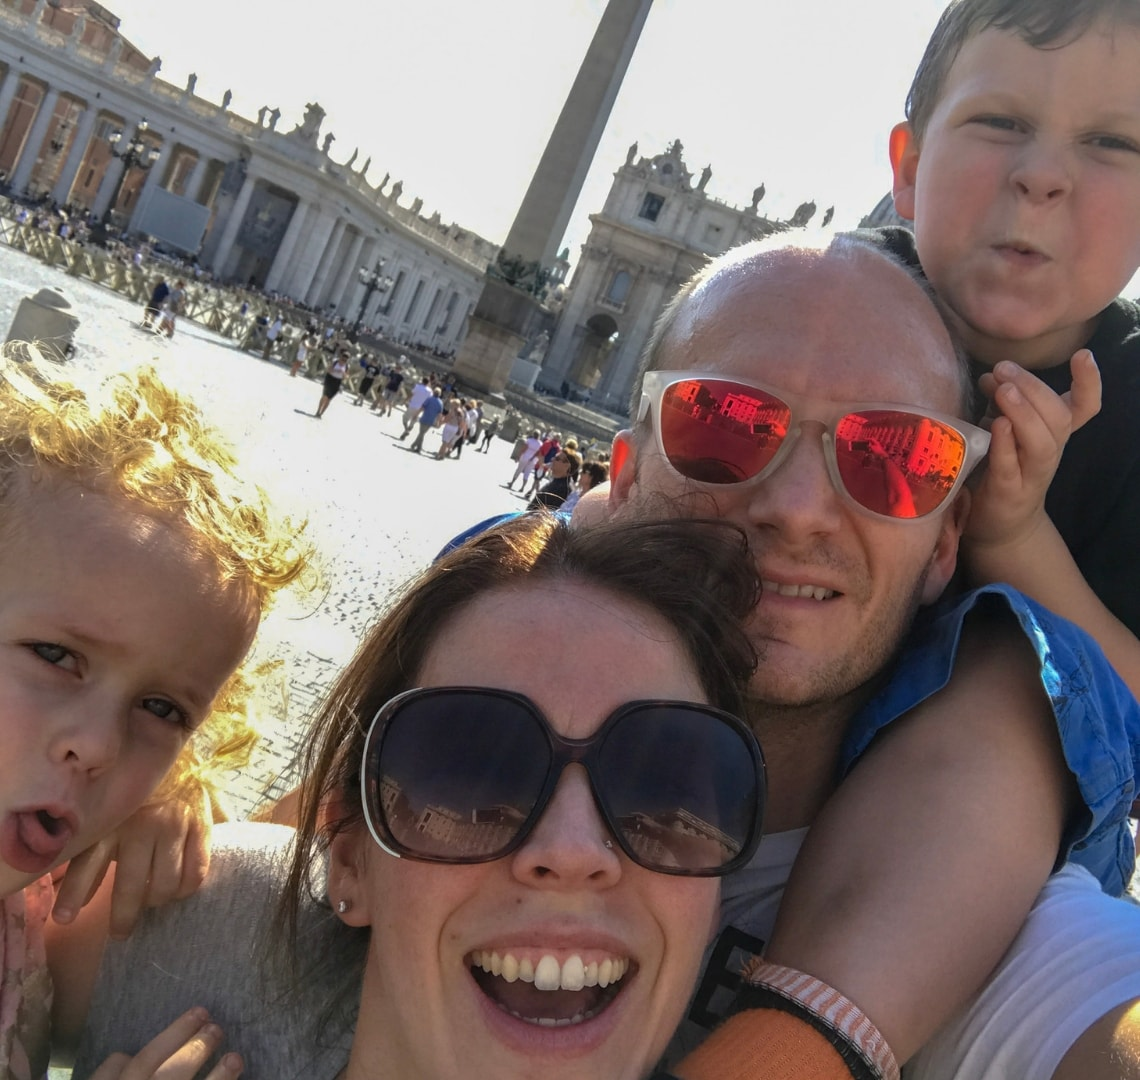 Rome - Wanderlust family selfie in St Mark's Square